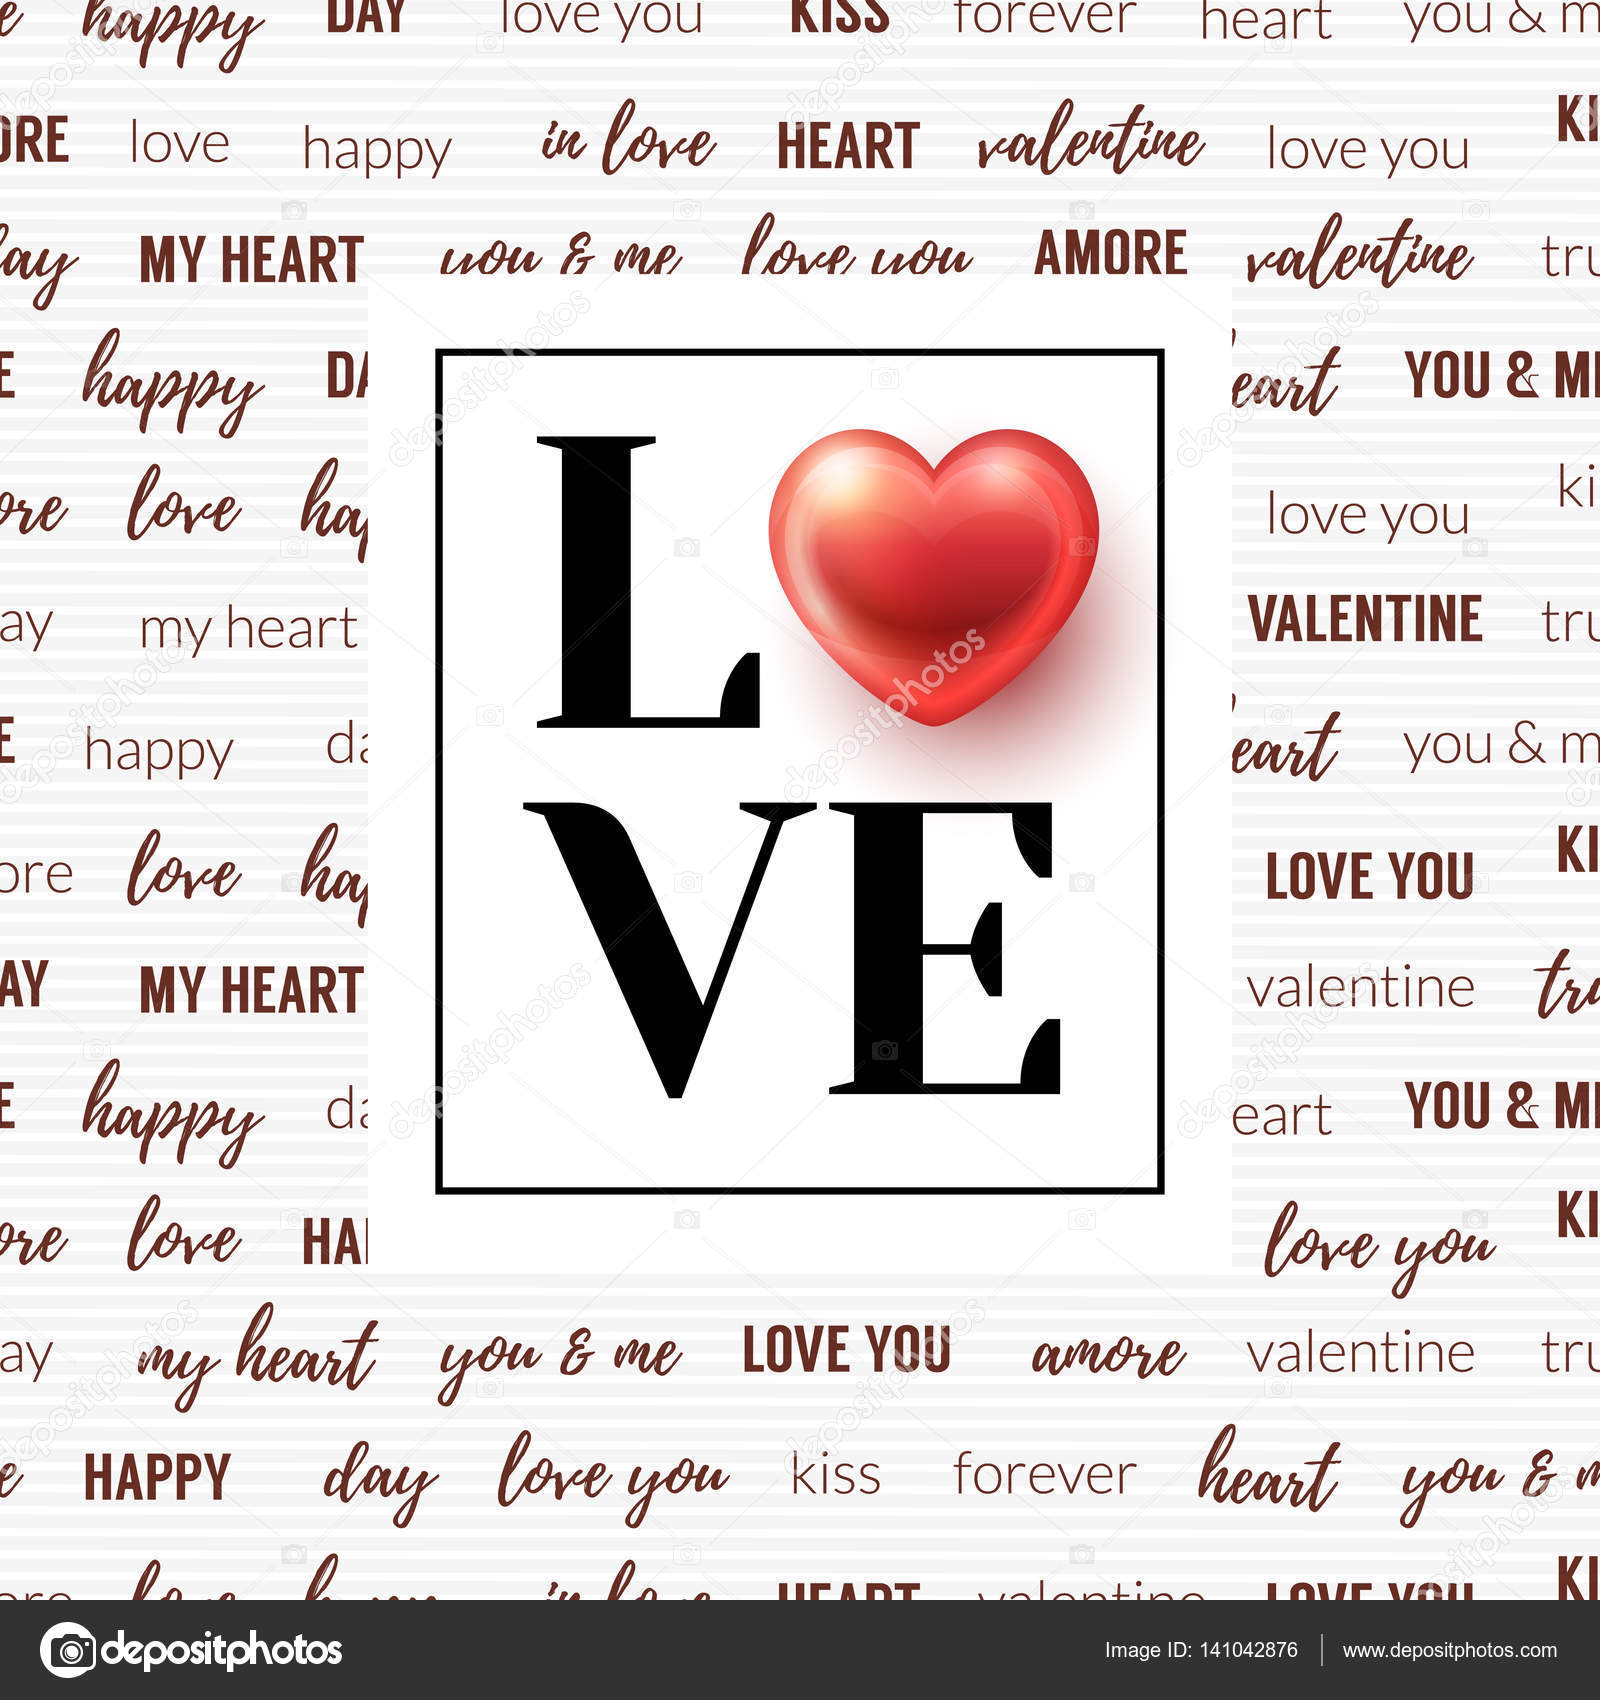 Lettering Love And Glossy Heart In Frame With Love Words On Background Valentines Day Design For Cards Wallpaper Flyers Posters Brochure